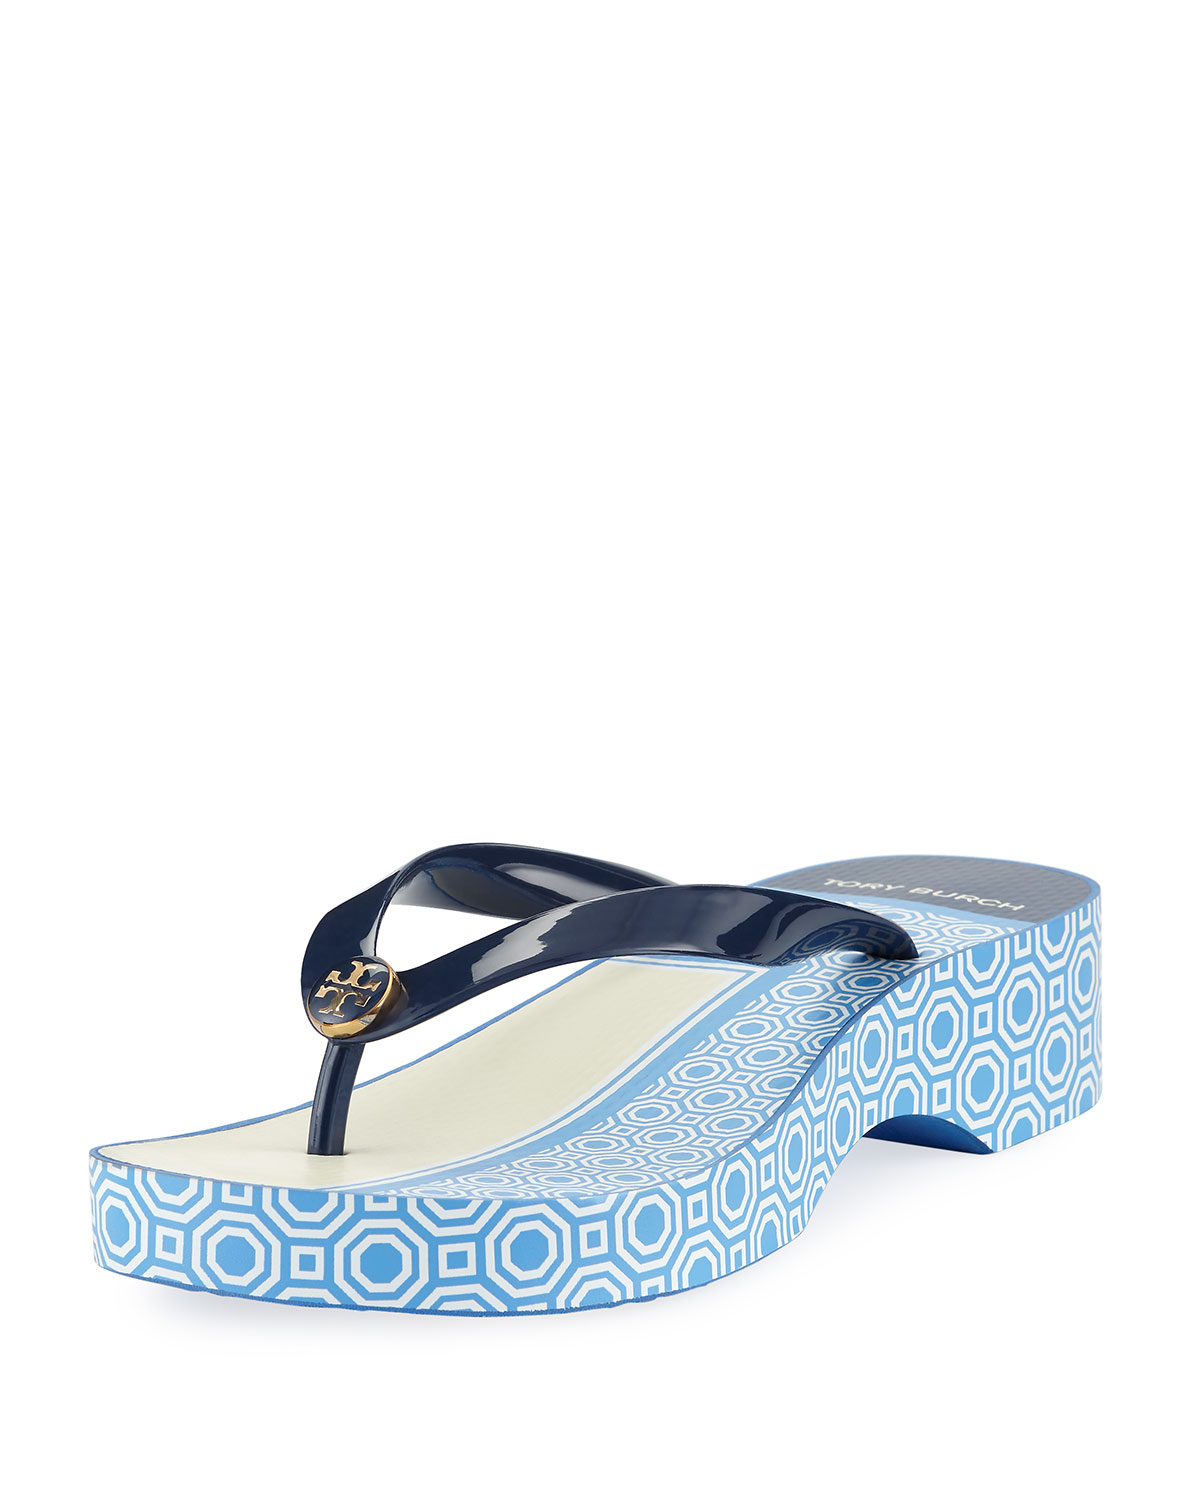 82596fb4cbdf Tory Burch Cutout Wedge Flip Flop